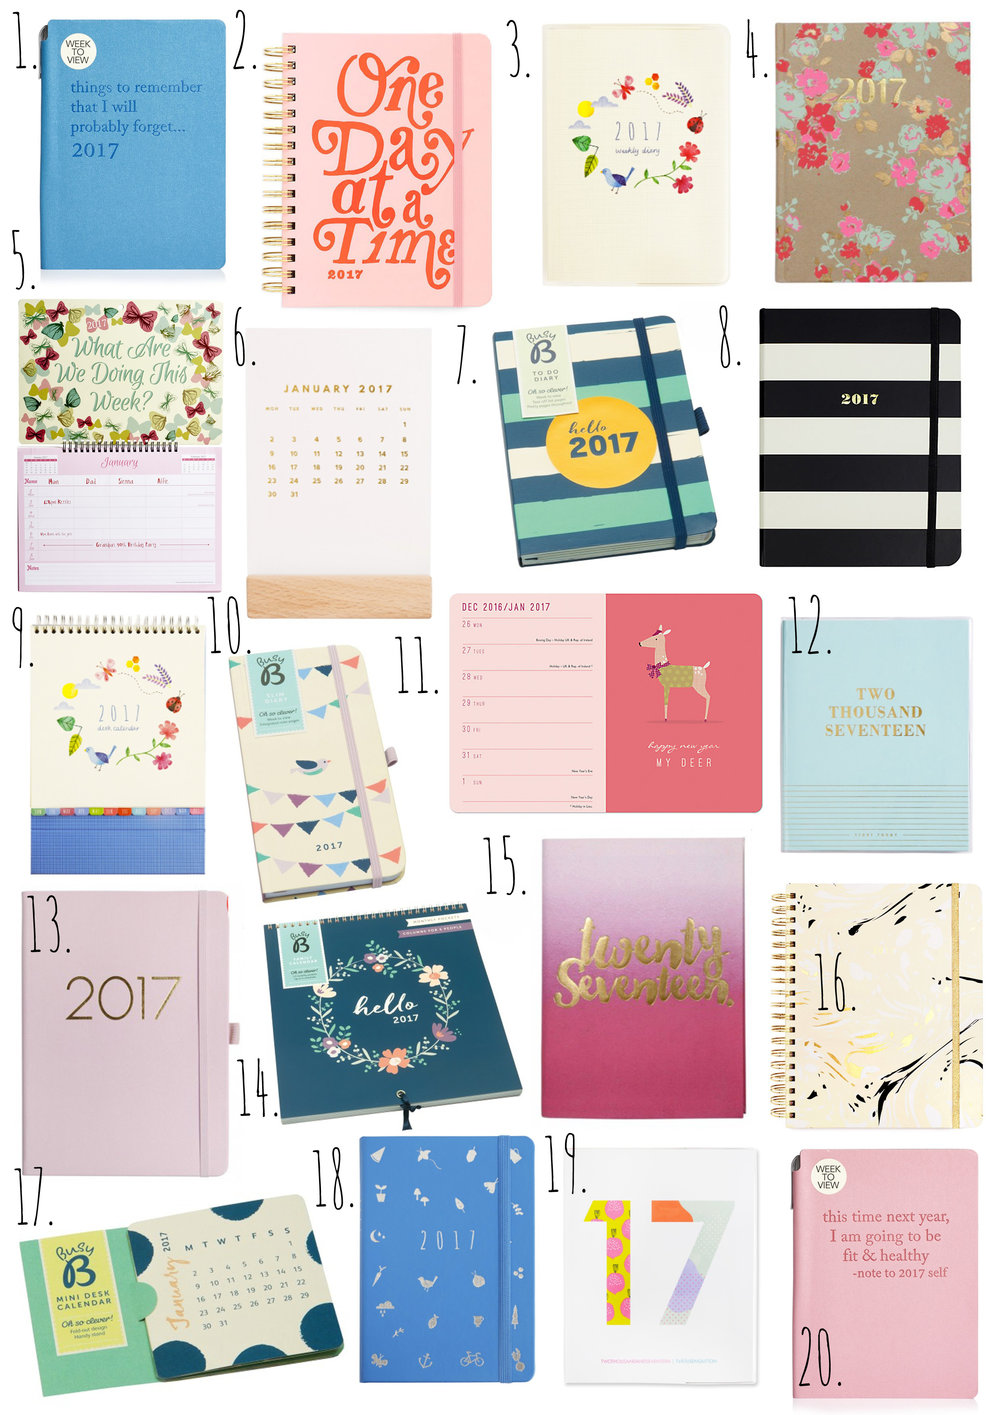 2017 Stationery Dream List.